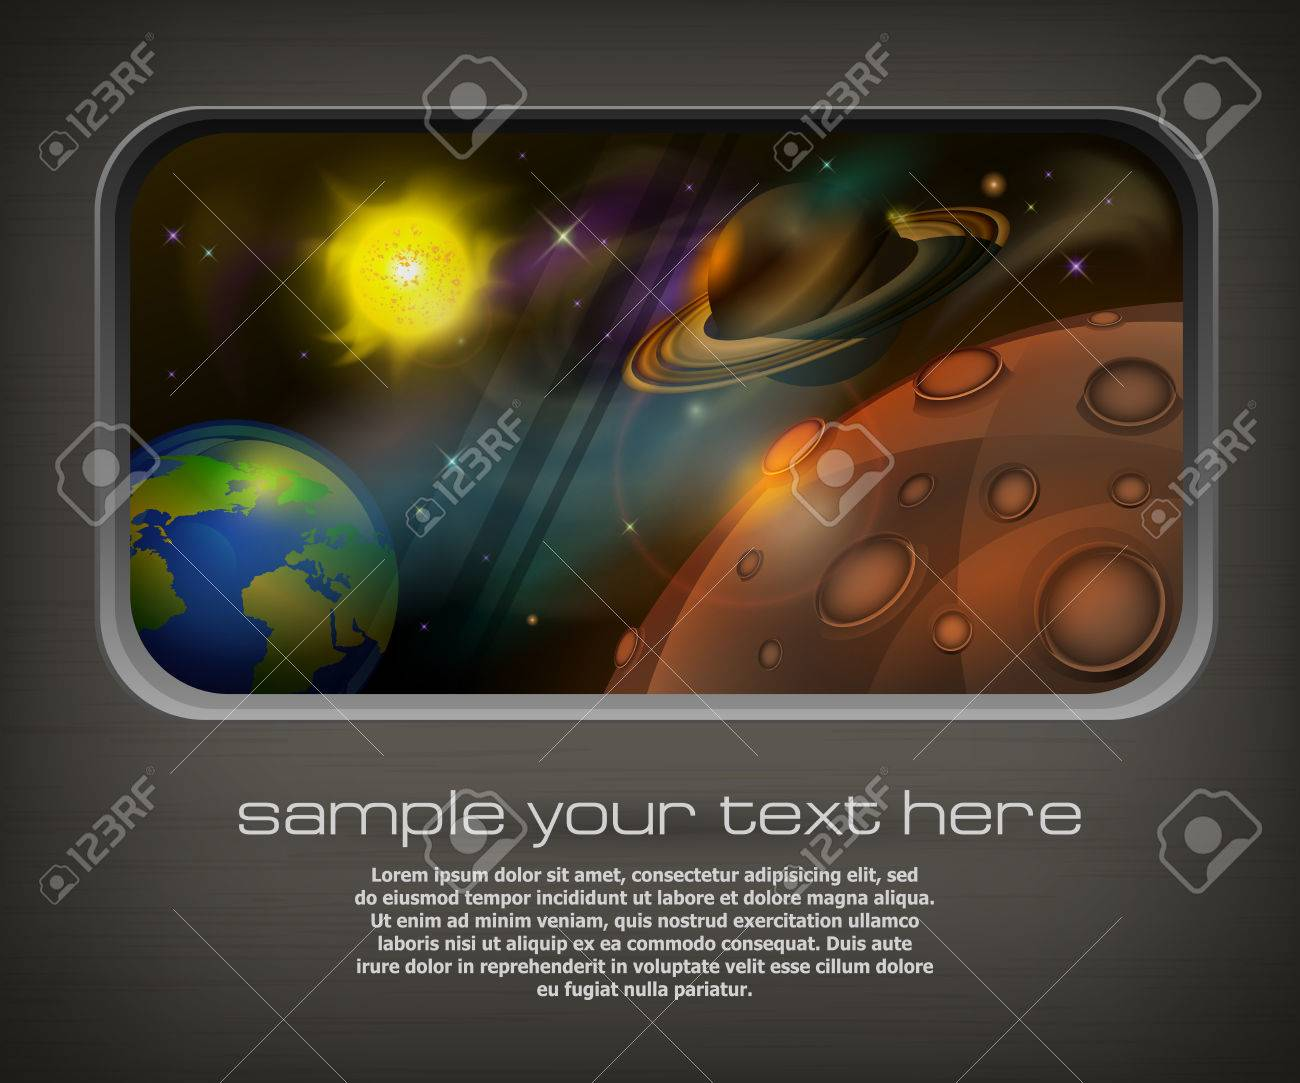 View from window to open space, planets, sun and star   text, illustration Stock Vector - 22719952